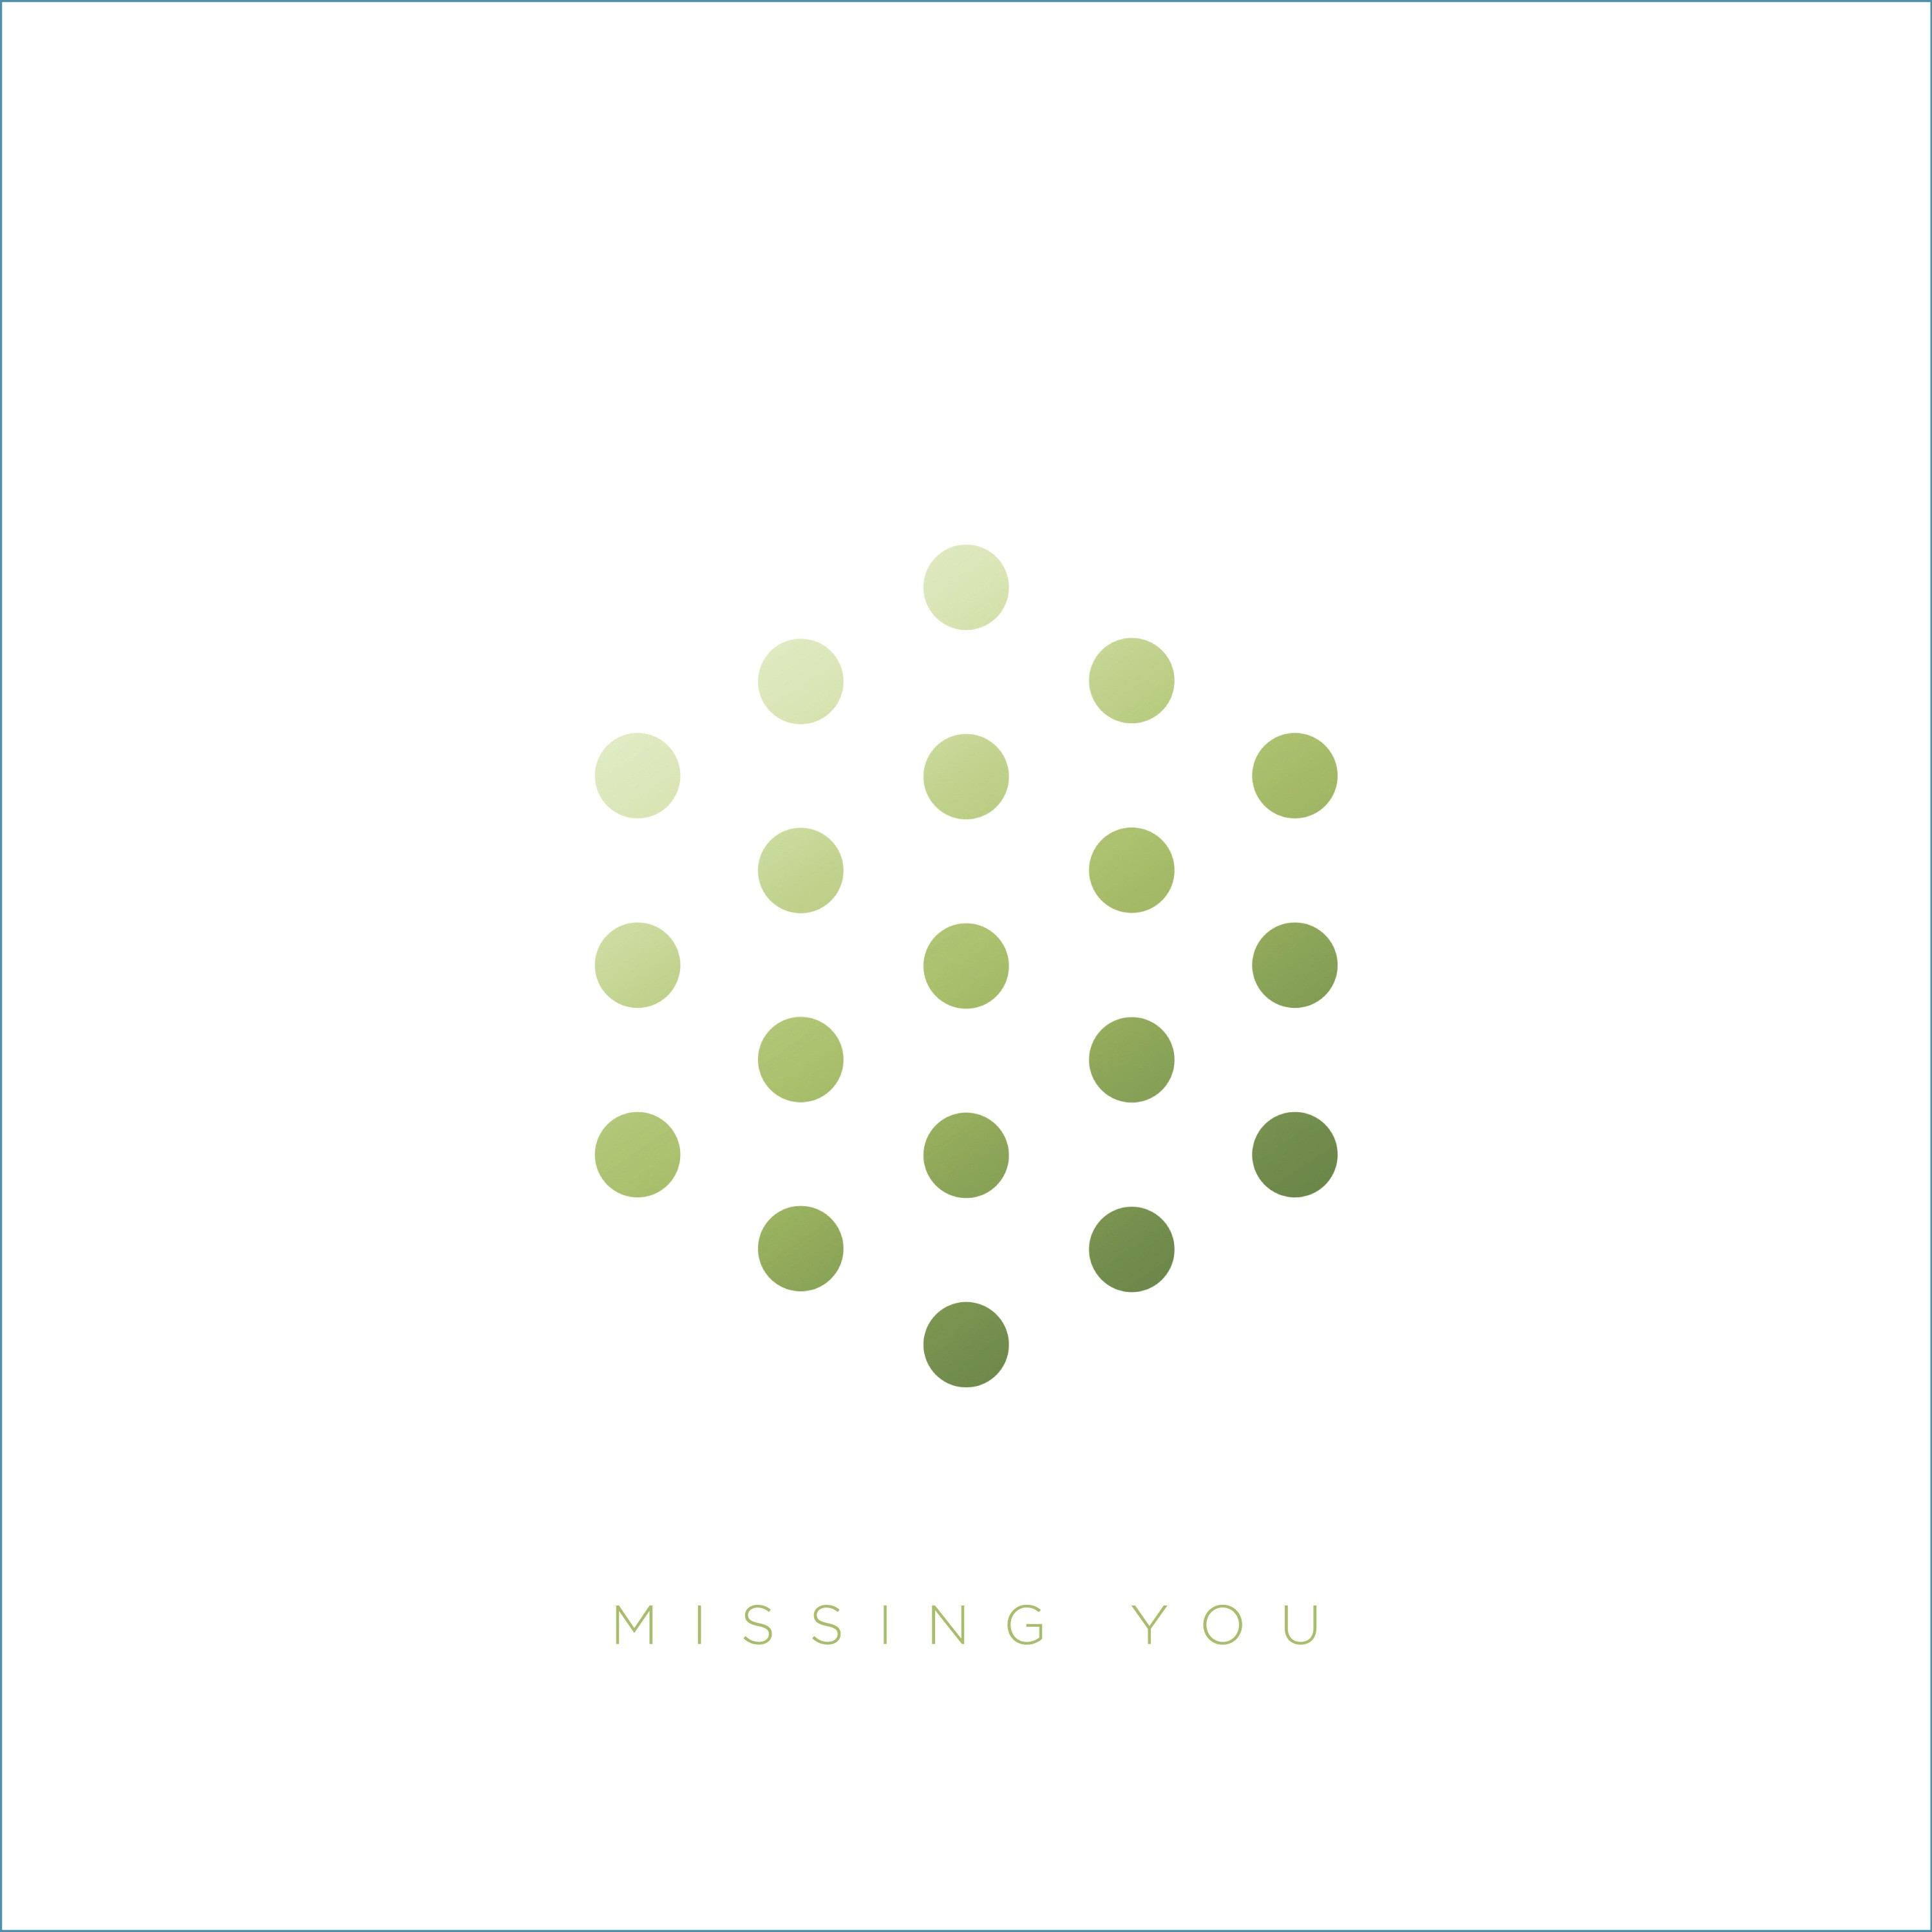 LSB - Missing You / Tumult